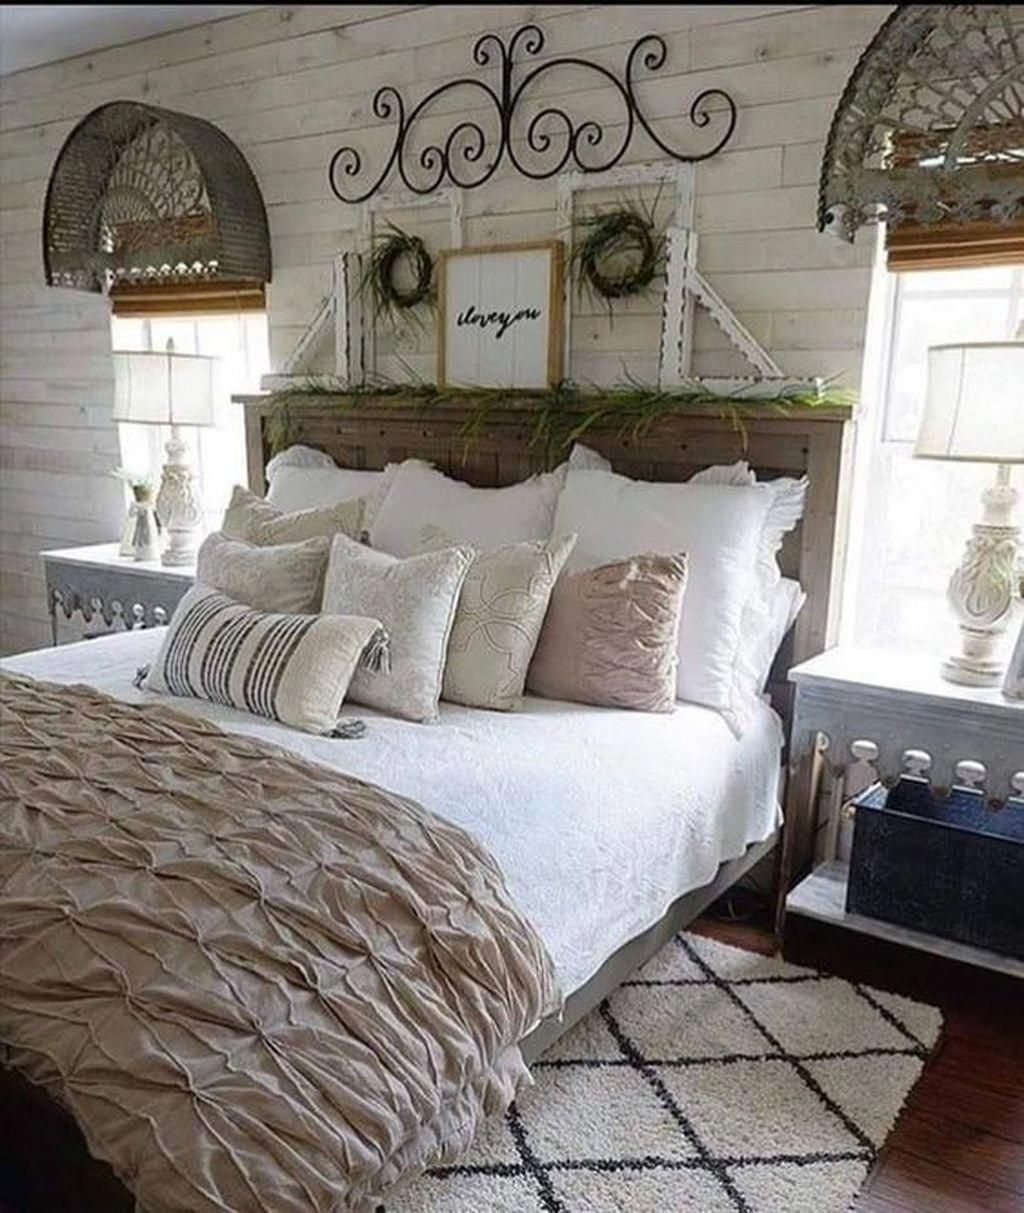 cheap home remodel spaces saleprice 19 in 2020 on modern farmhouse master bedroom ideas id=41027